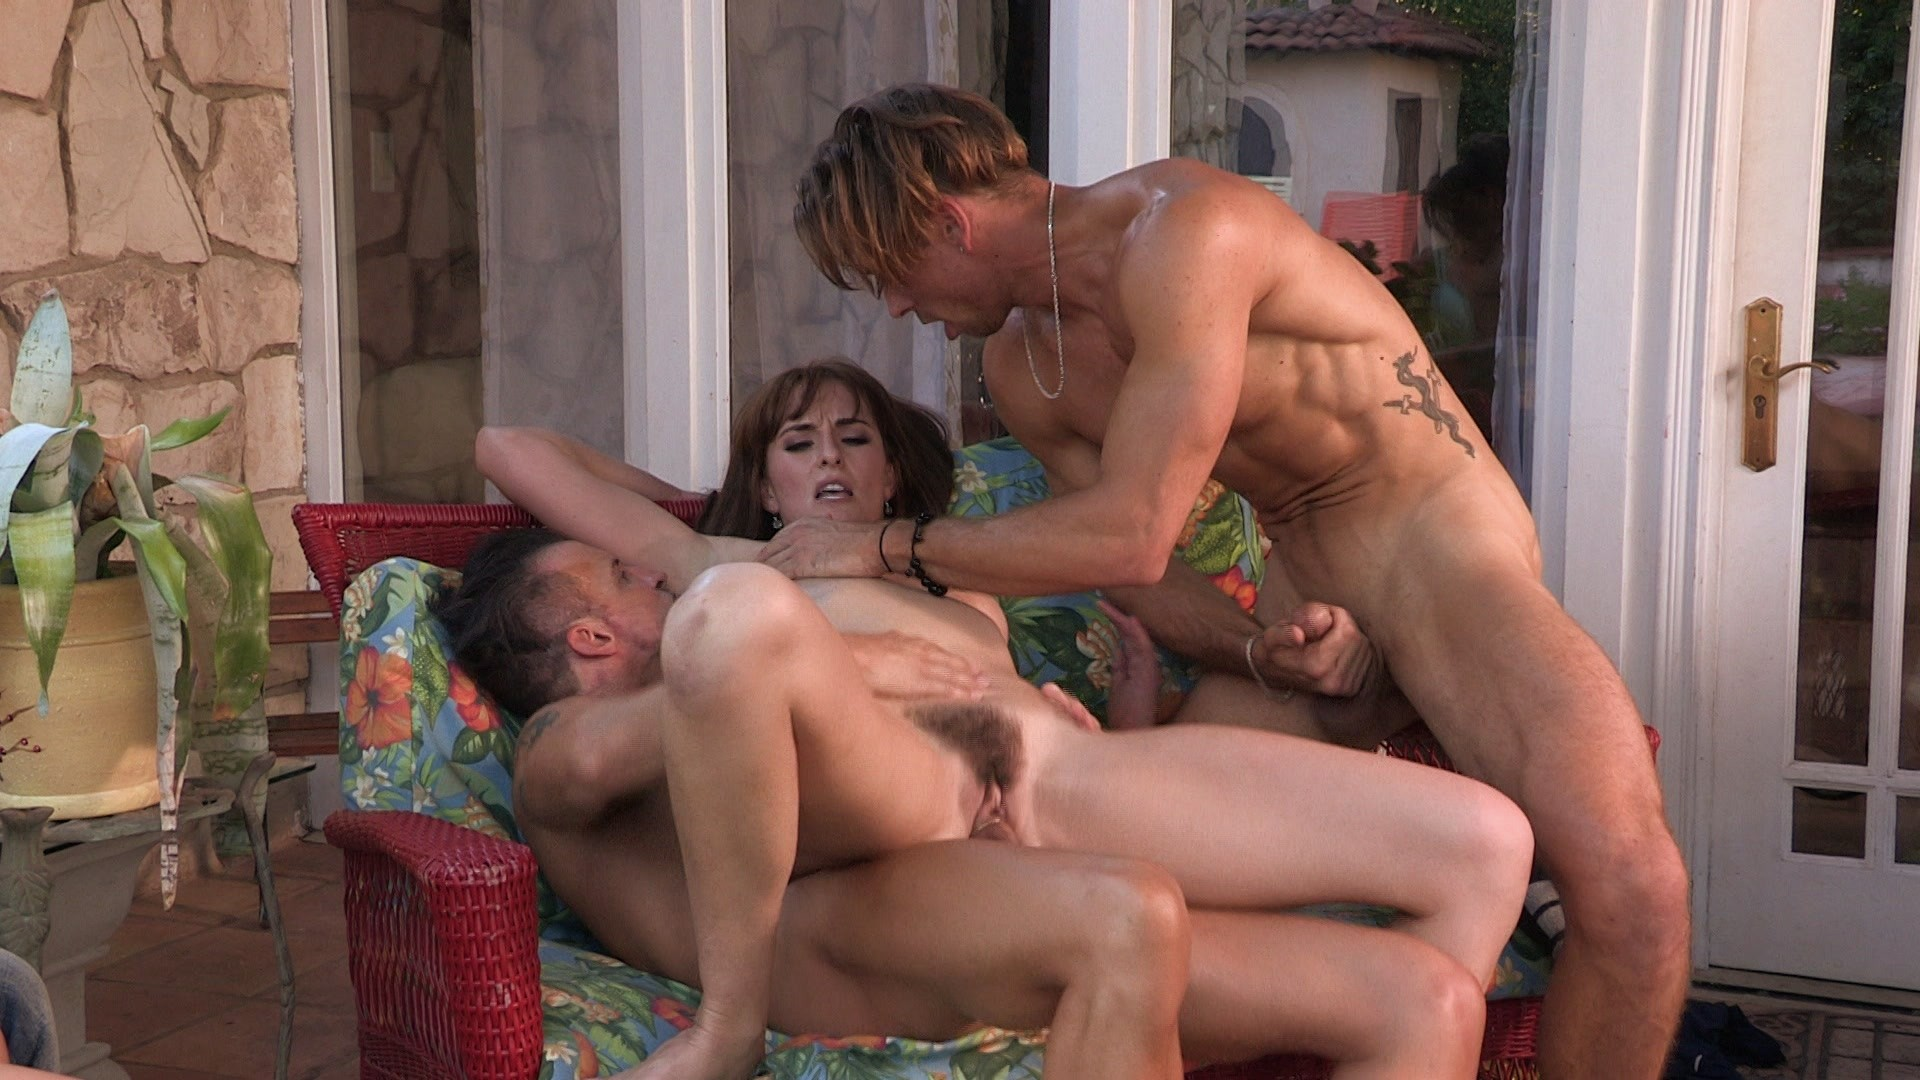 driver-free-stream-fuck-movie-sister-naked-consensual